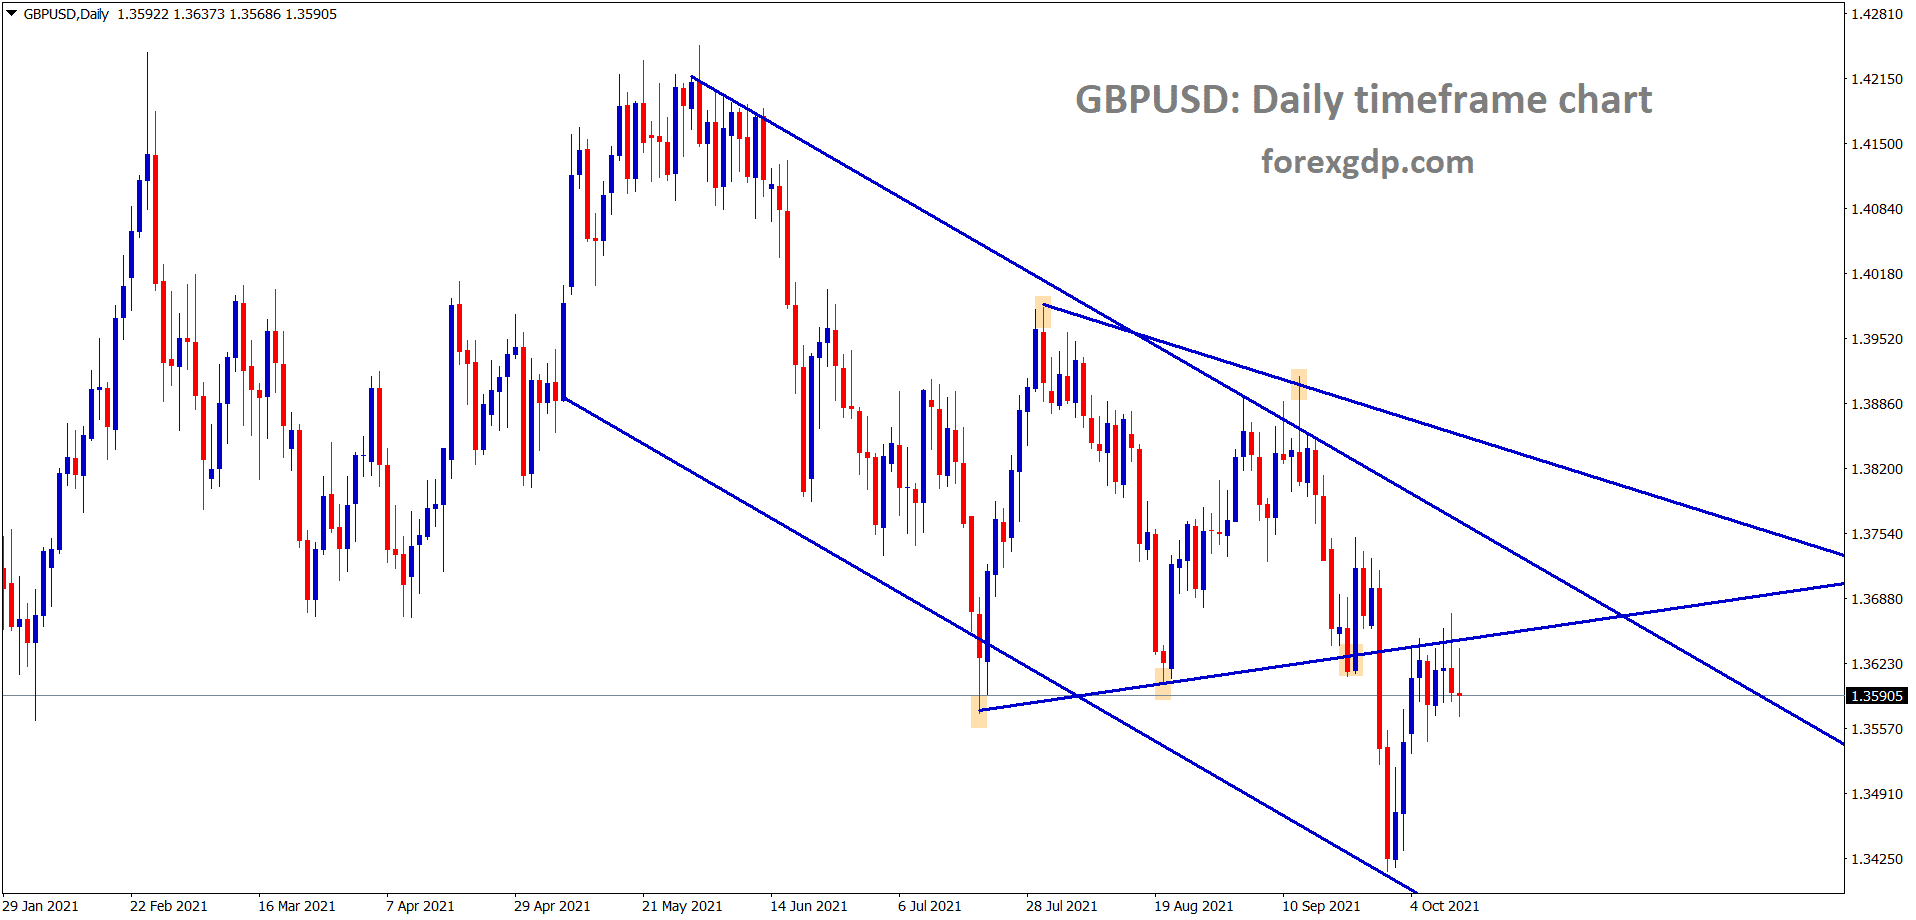 GBPUSD is standing at the retest area of the symmetrical triangle pattern